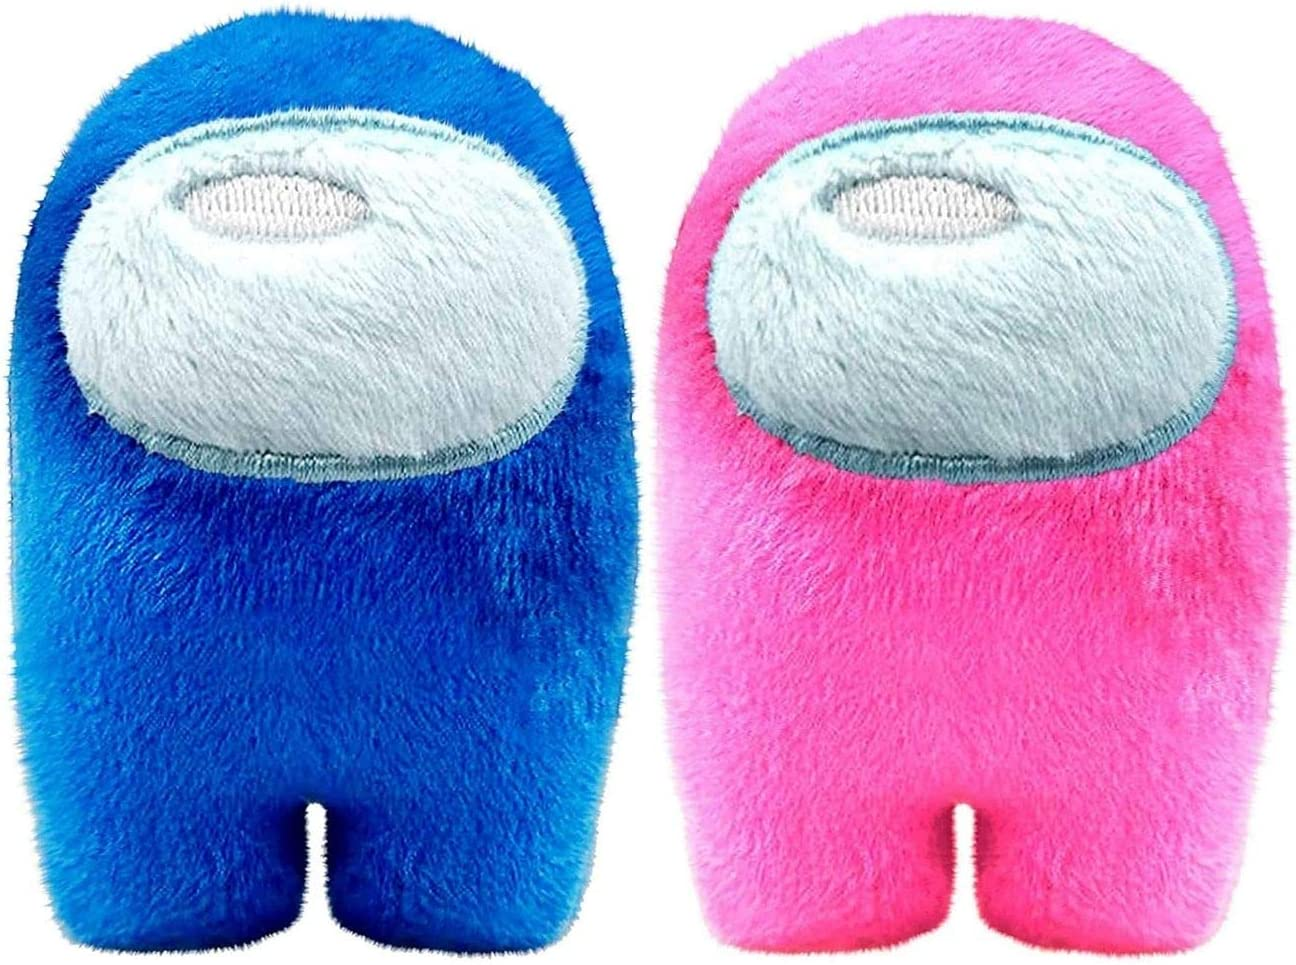 Among in Spasm price Us Game 5 popular Plush Toys Plus Imposter Soft Animals Stuffed